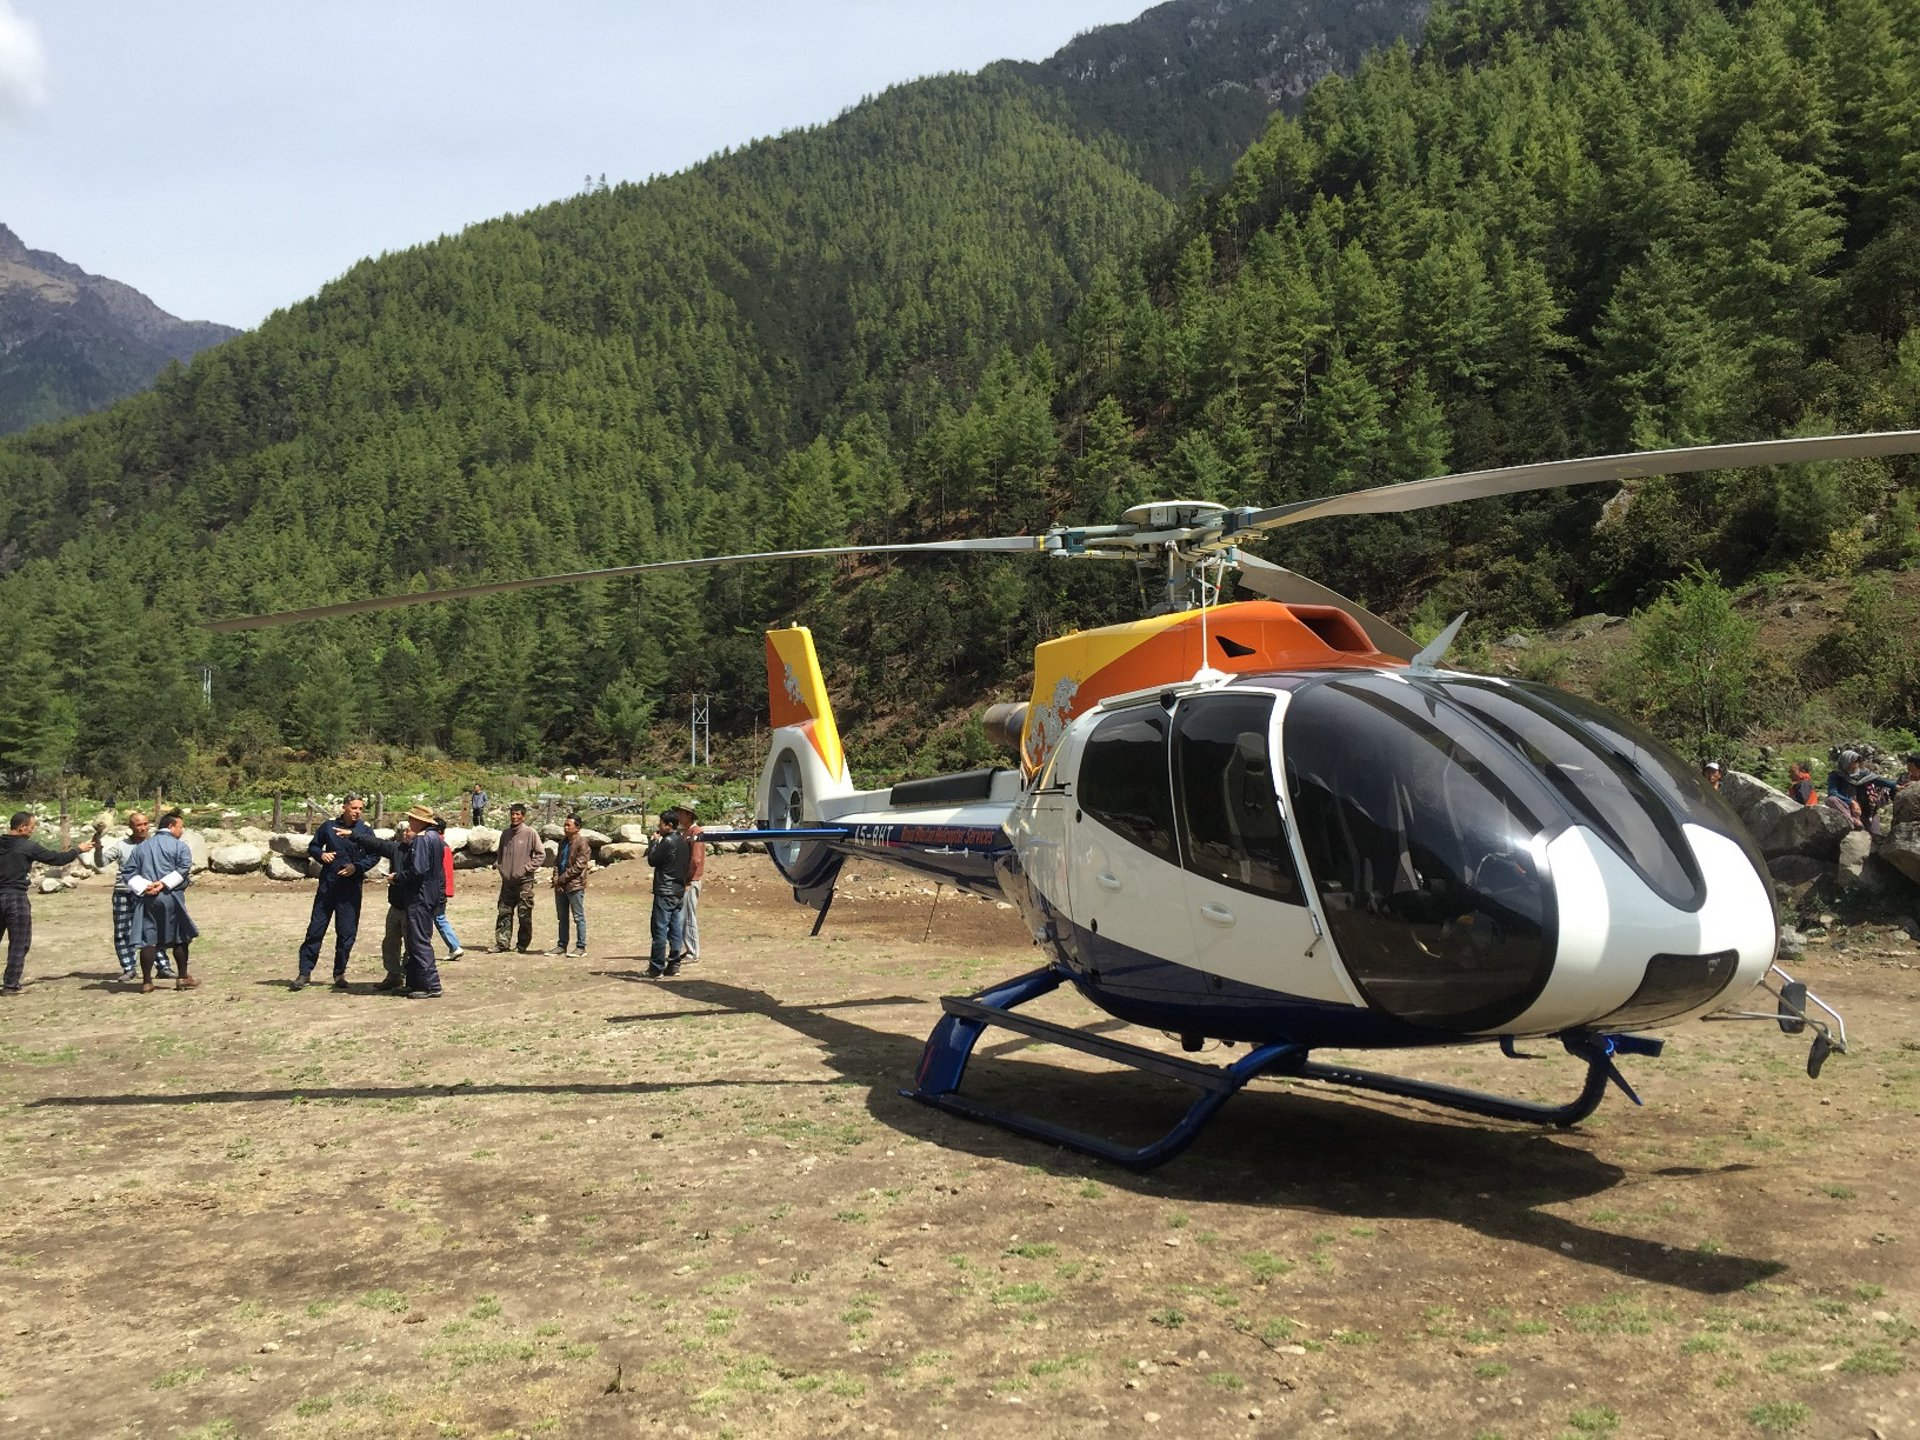 Royal Bhutan Helicopter Services Limited takes delivery of its second H130